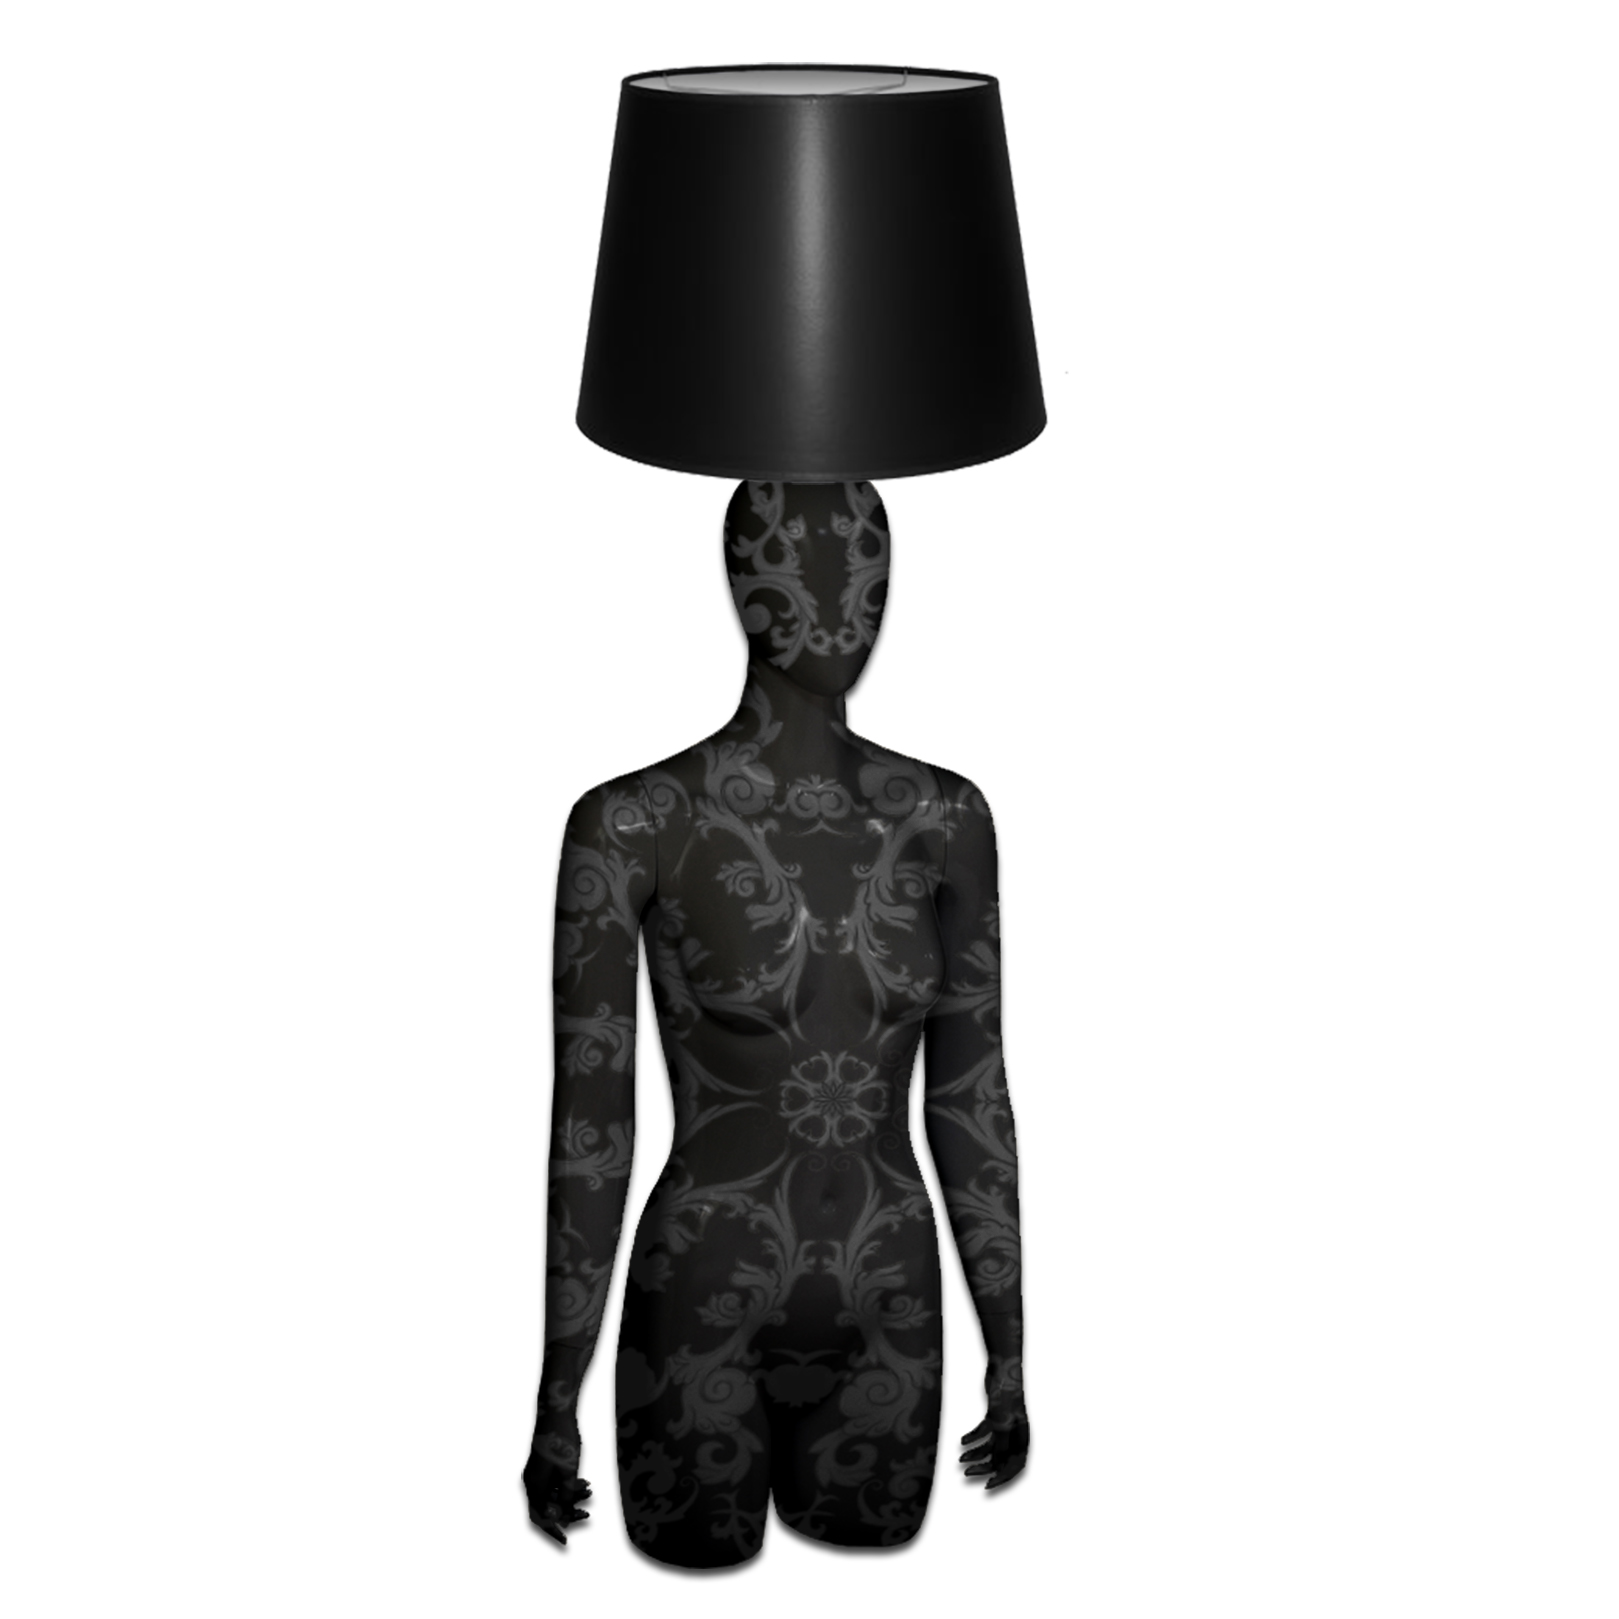 Mannequin Table Lamp_Head & Hands_Baroque